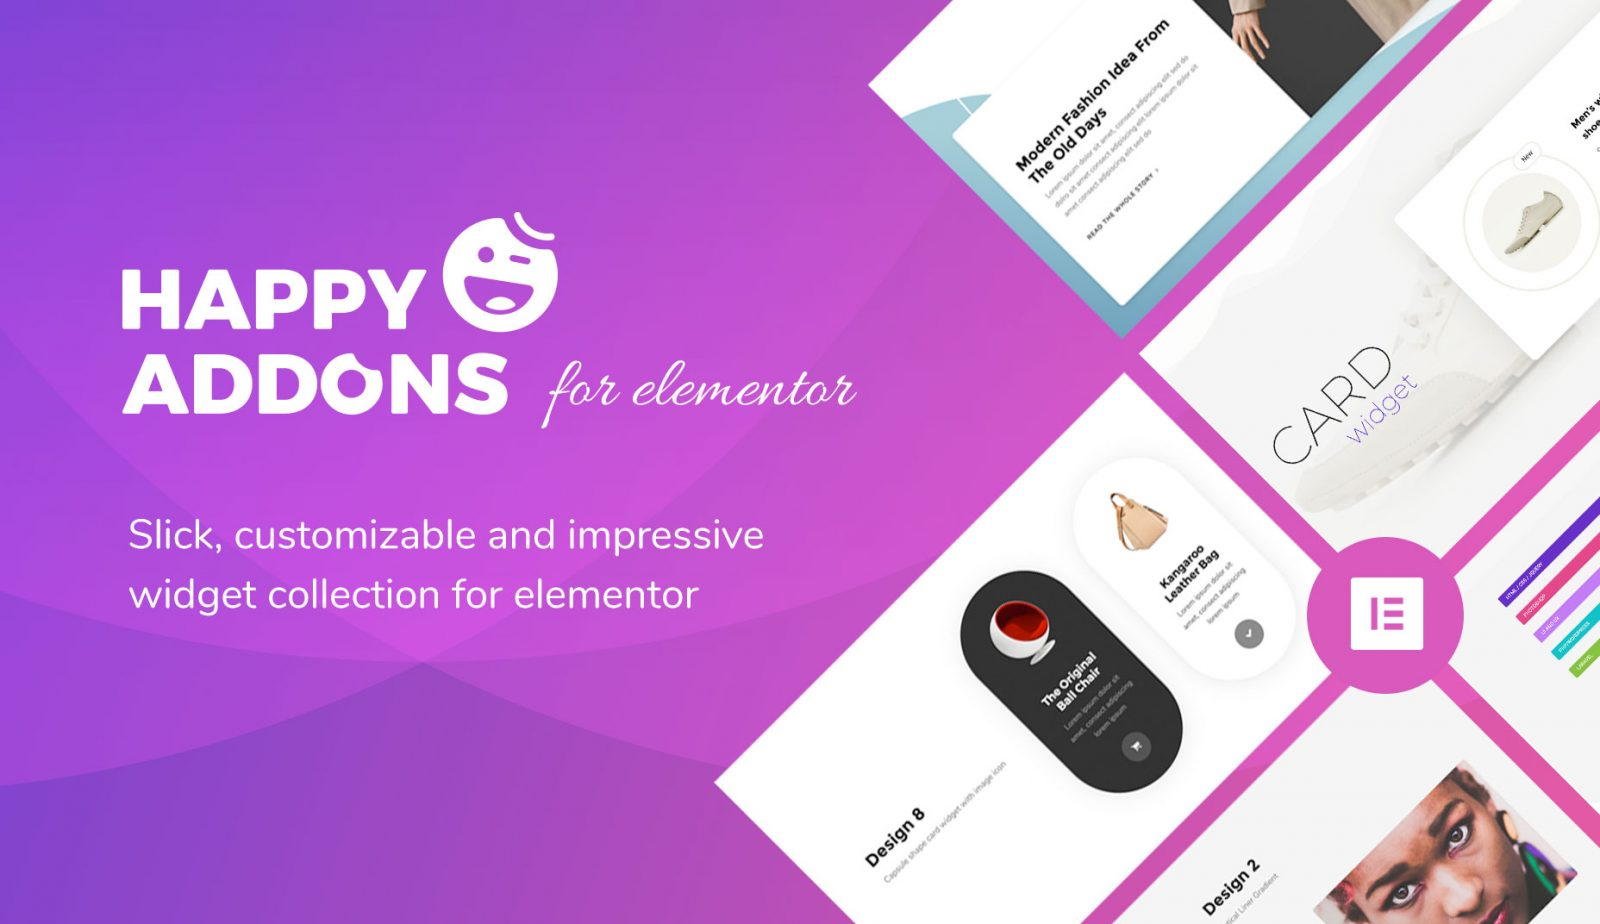 happyaddons for elementor